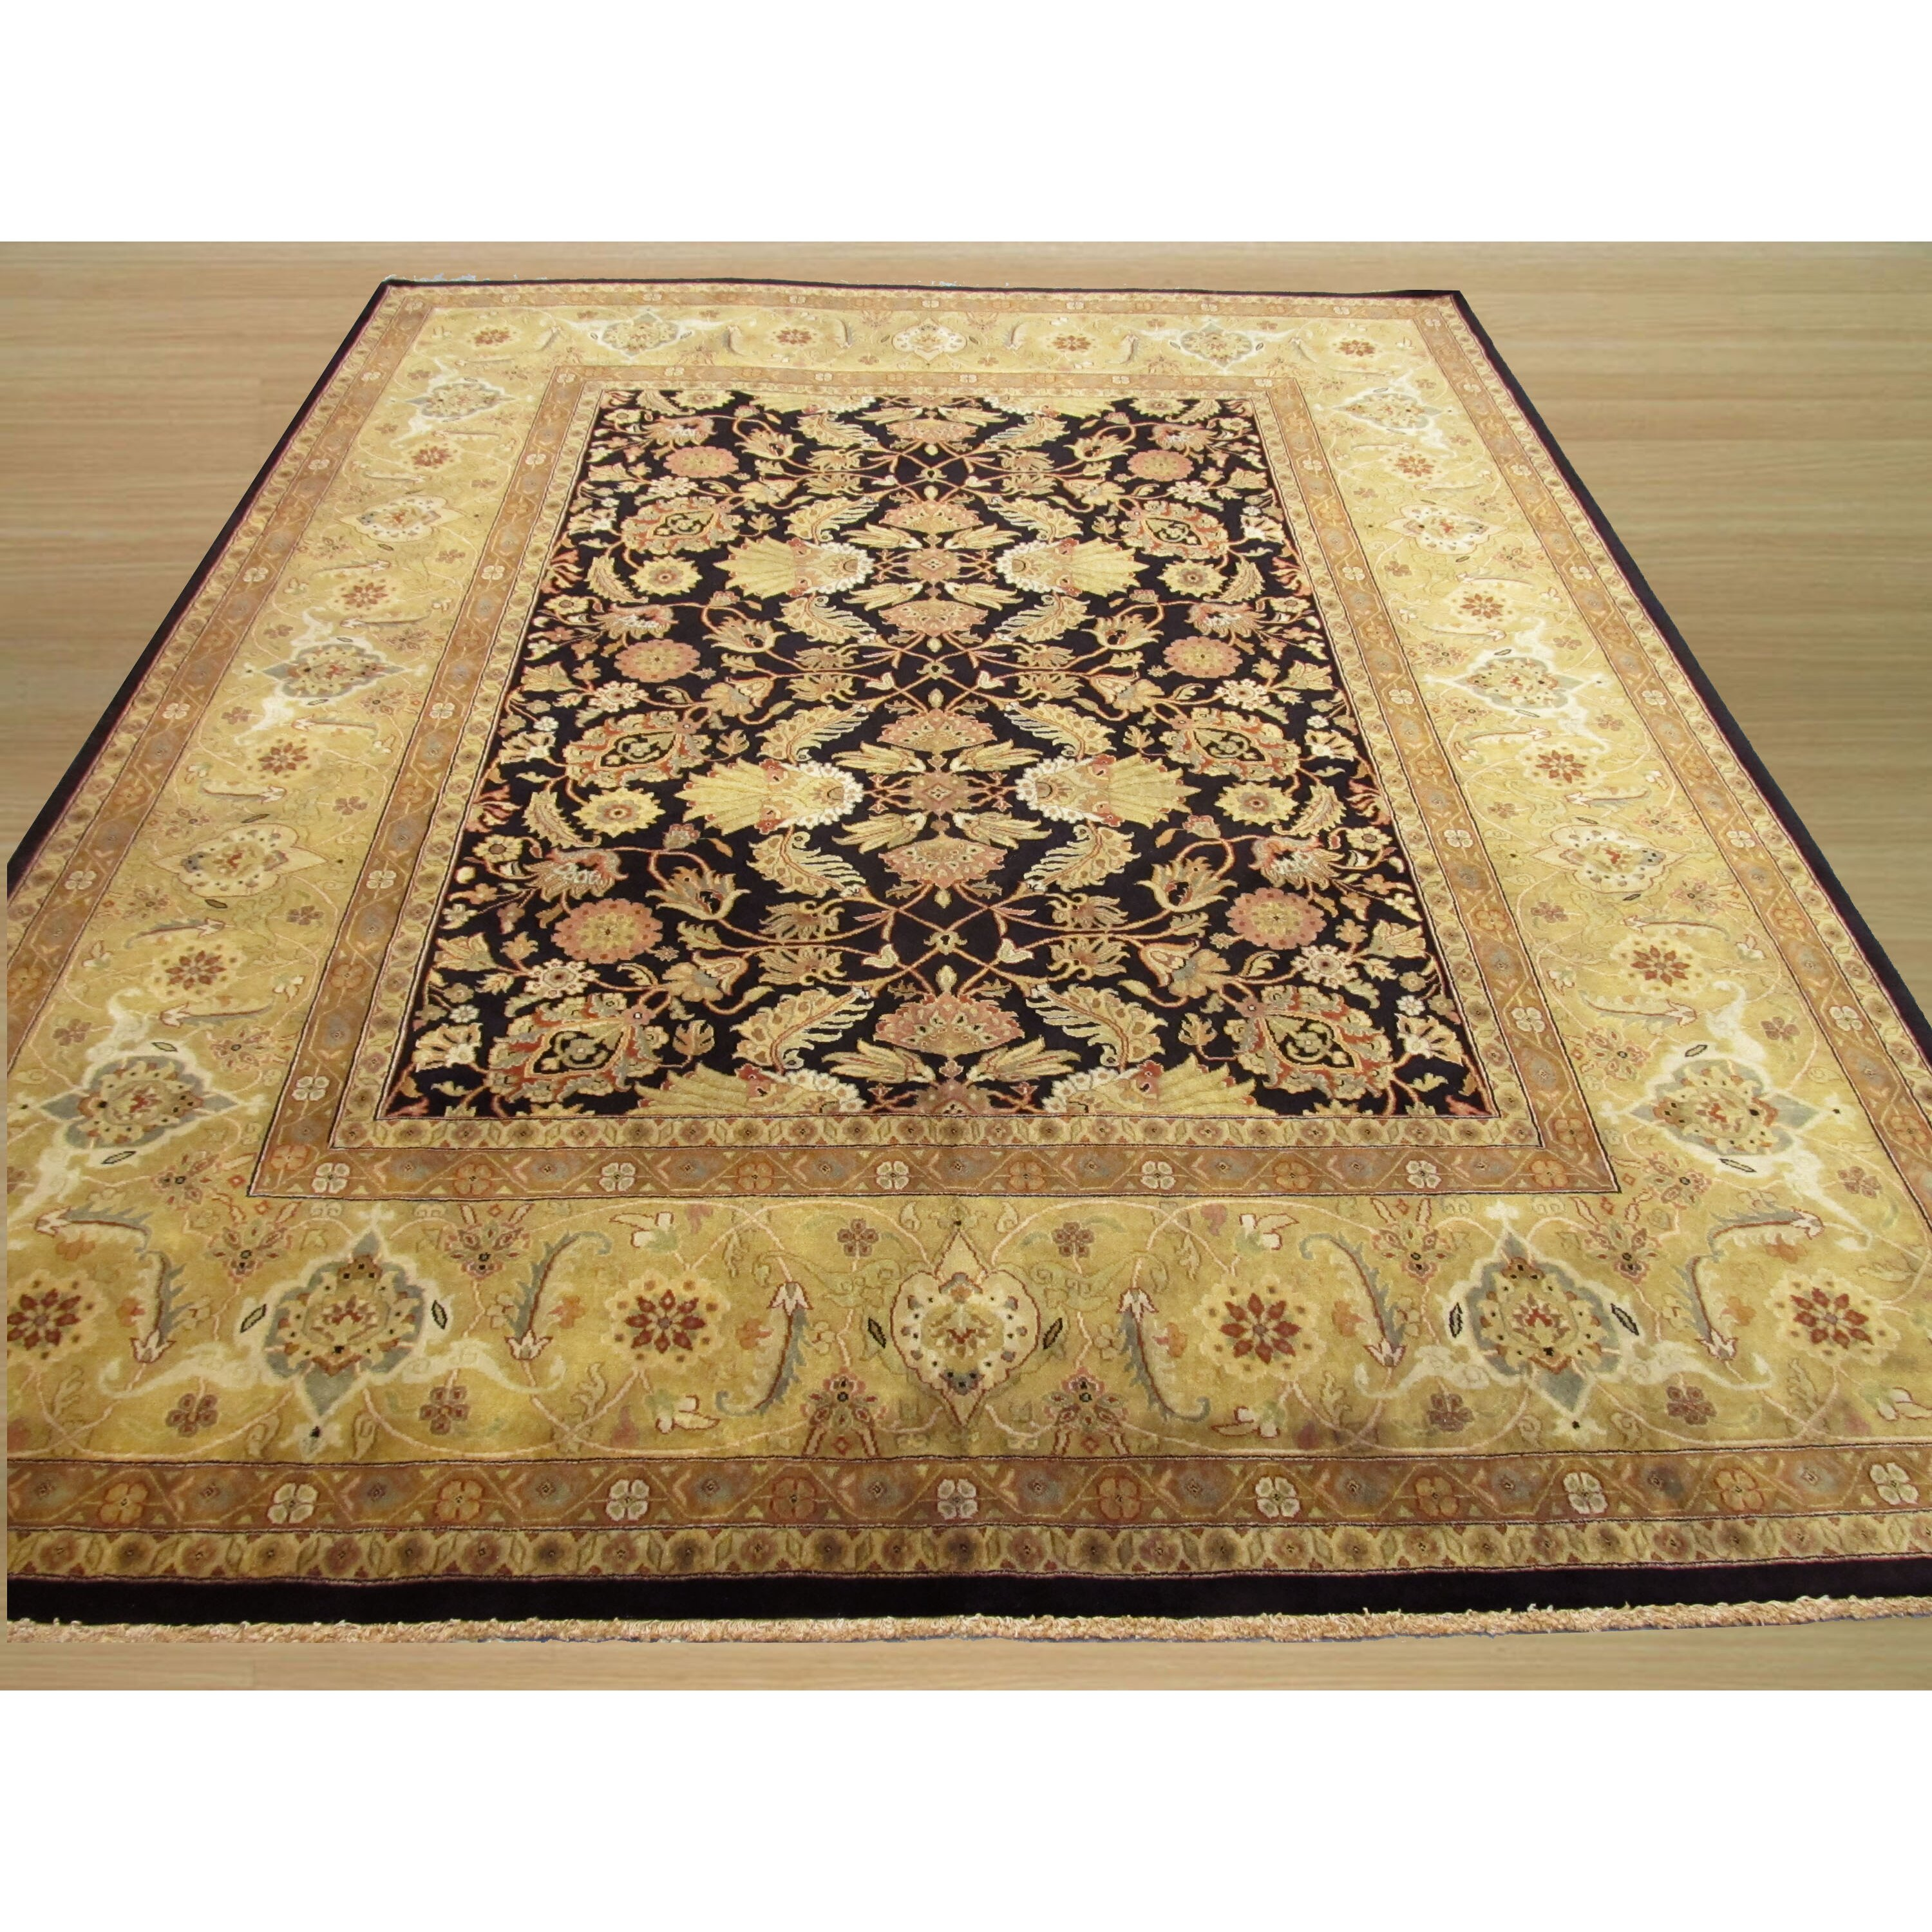 Eastern Rugs Tabriz New Zealand Hand-Knotted Black/Ivory